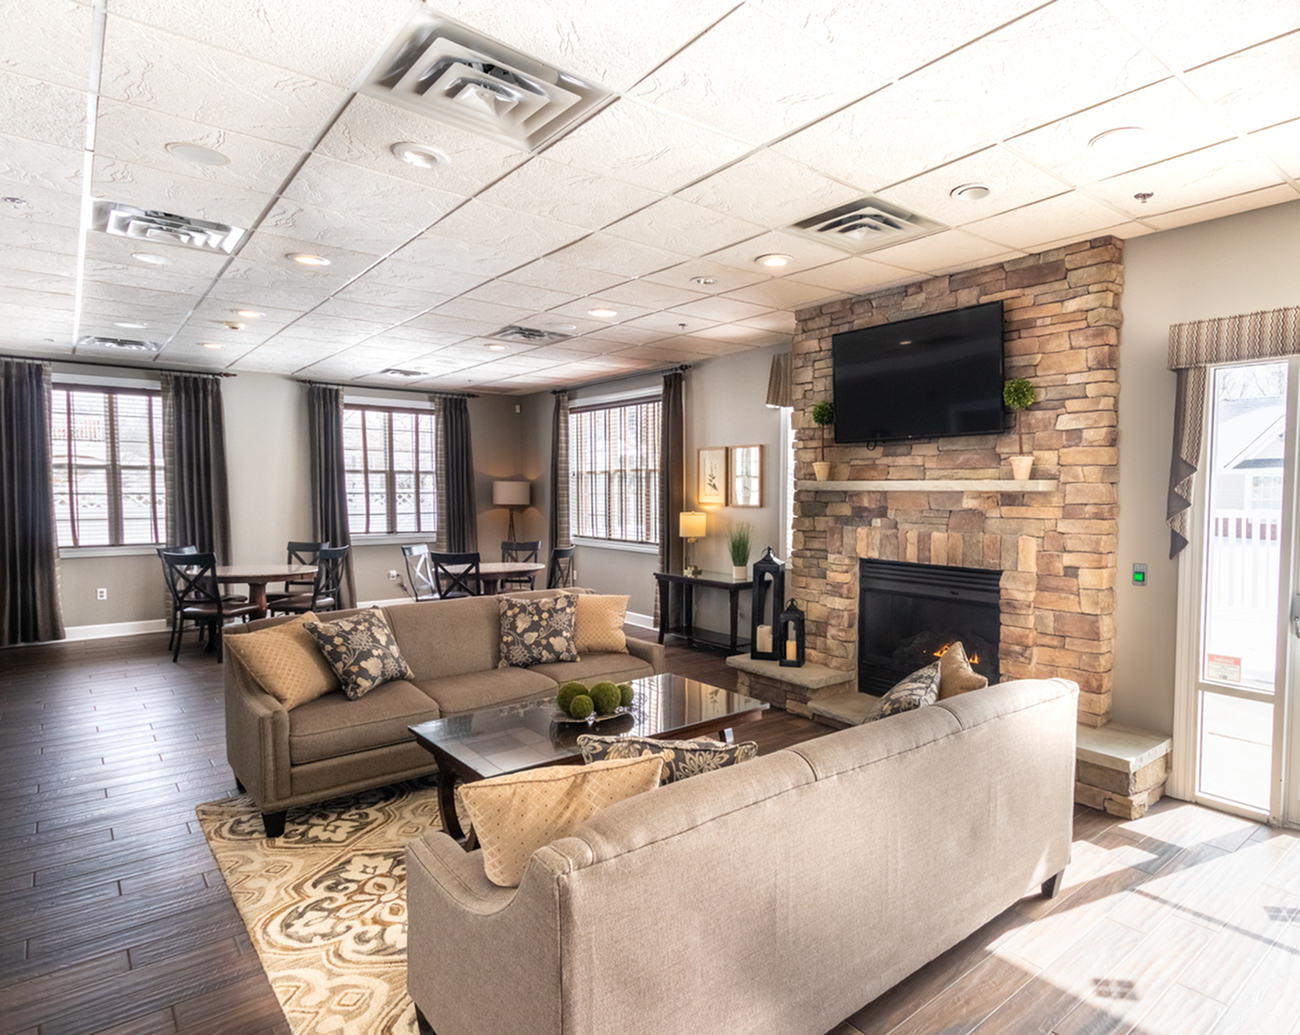 Resident Lounge | Apartment Homes in East Amherst, NY | Autumn Creek Apartments